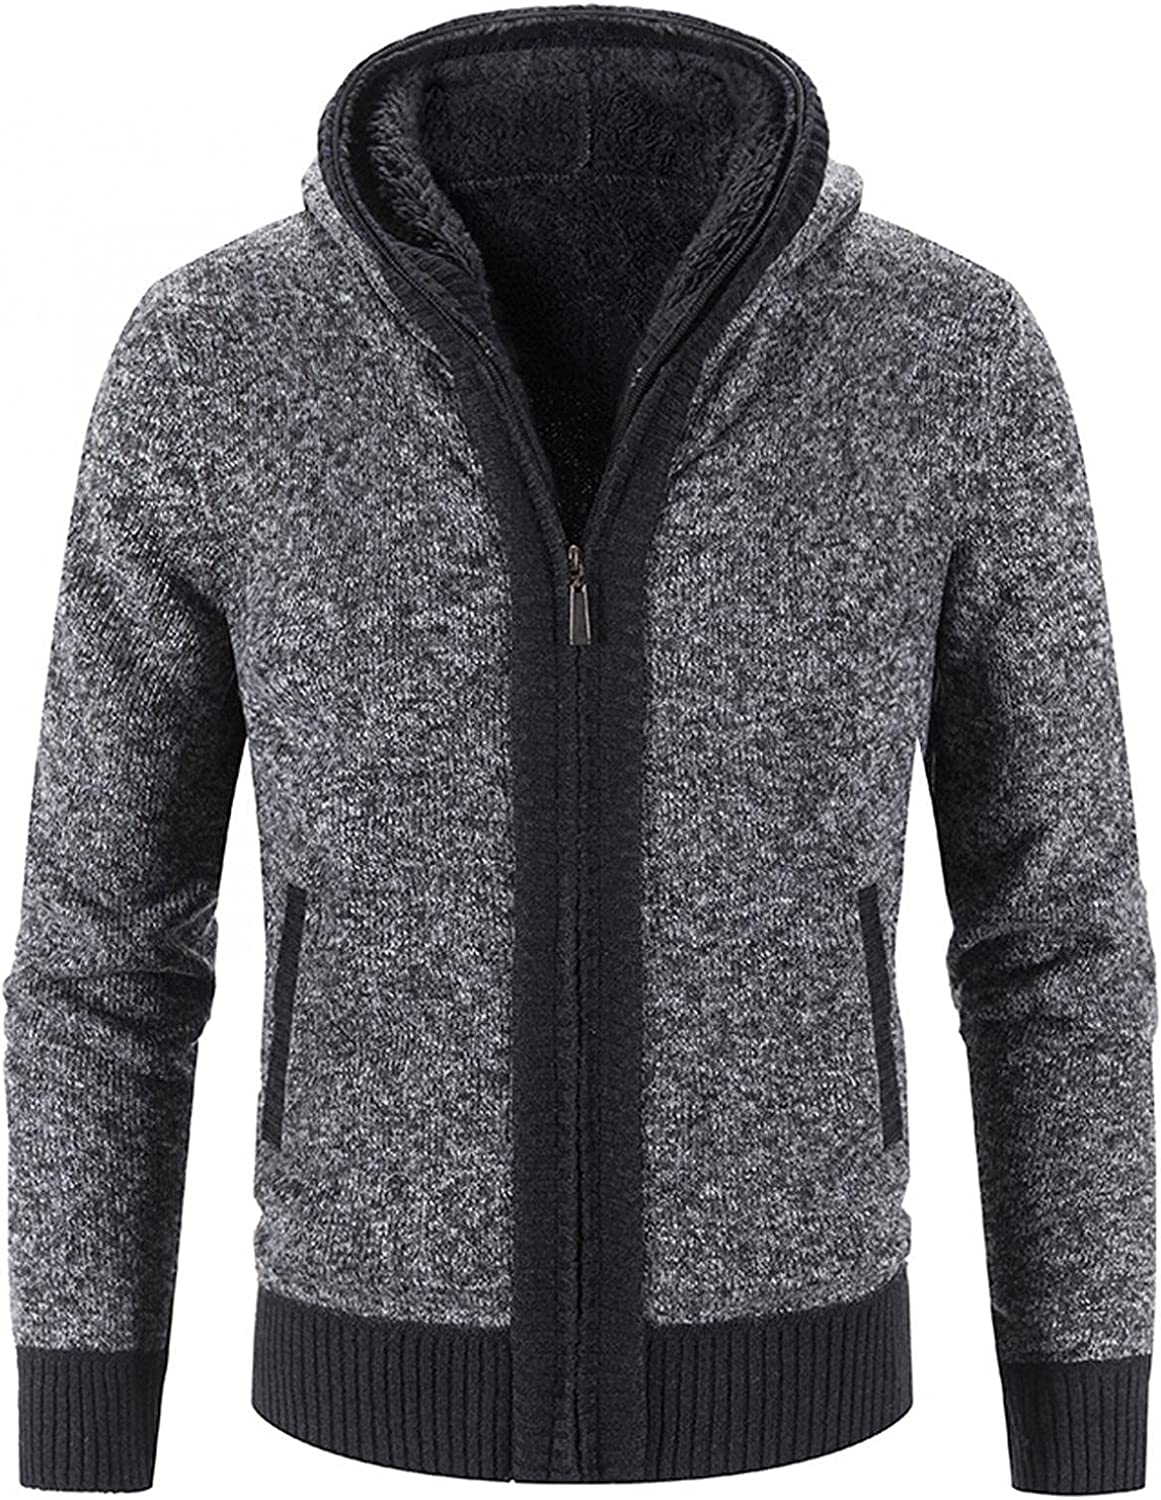 Aayomet Hoodies Cardigan for Men Winter Warm Solid Zip Long Sleeve Casual Hooded Pullover Tops Sweaters Coat with Pockets